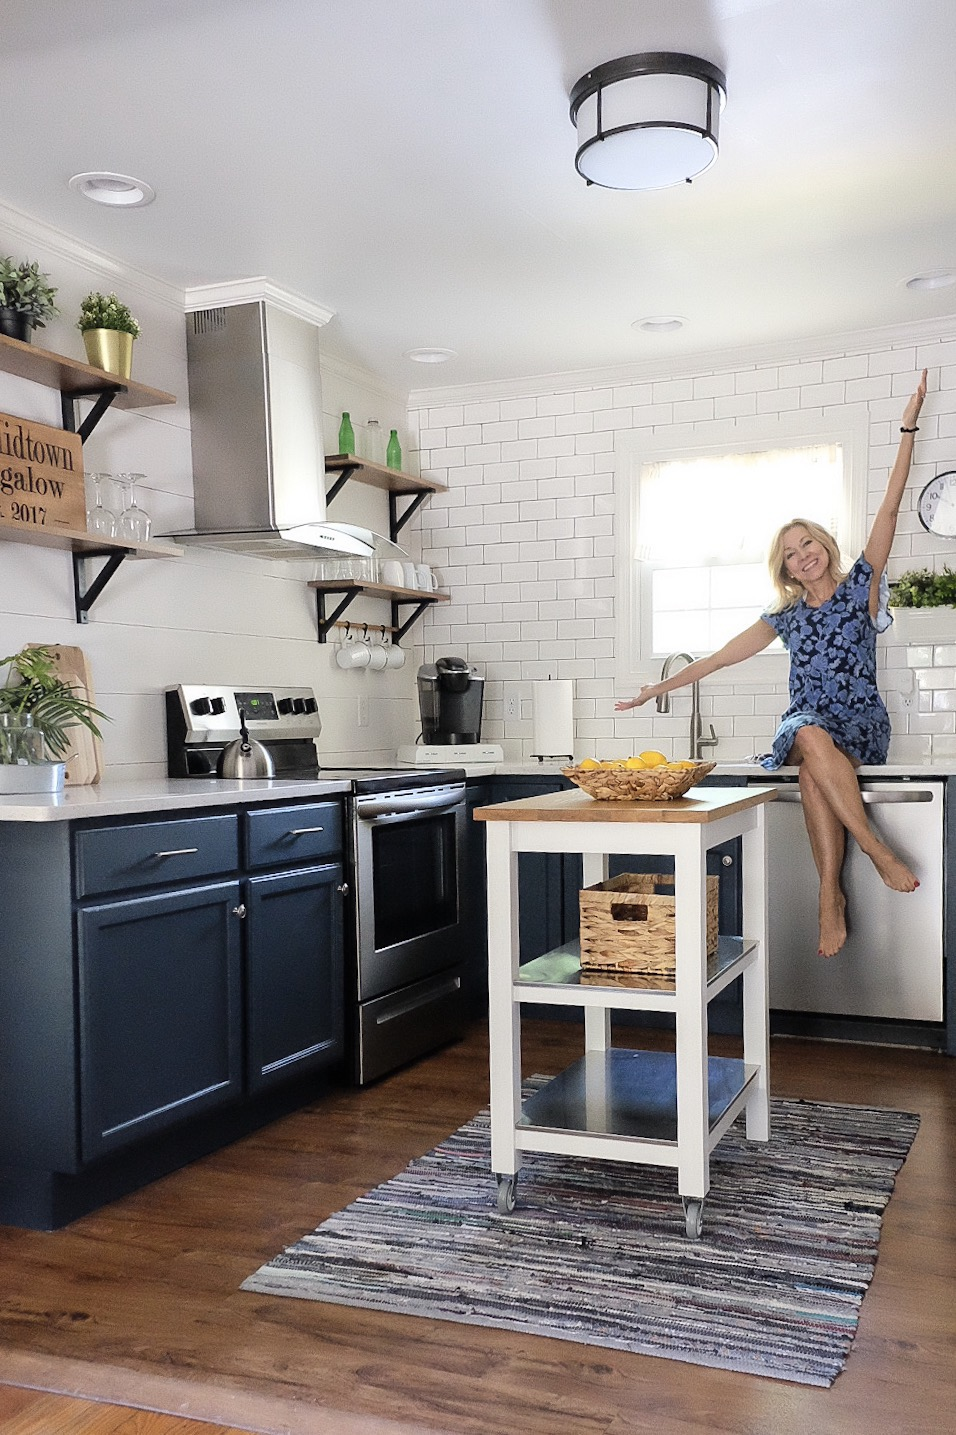 painted navy cabinets -   cottagestyleblog.com